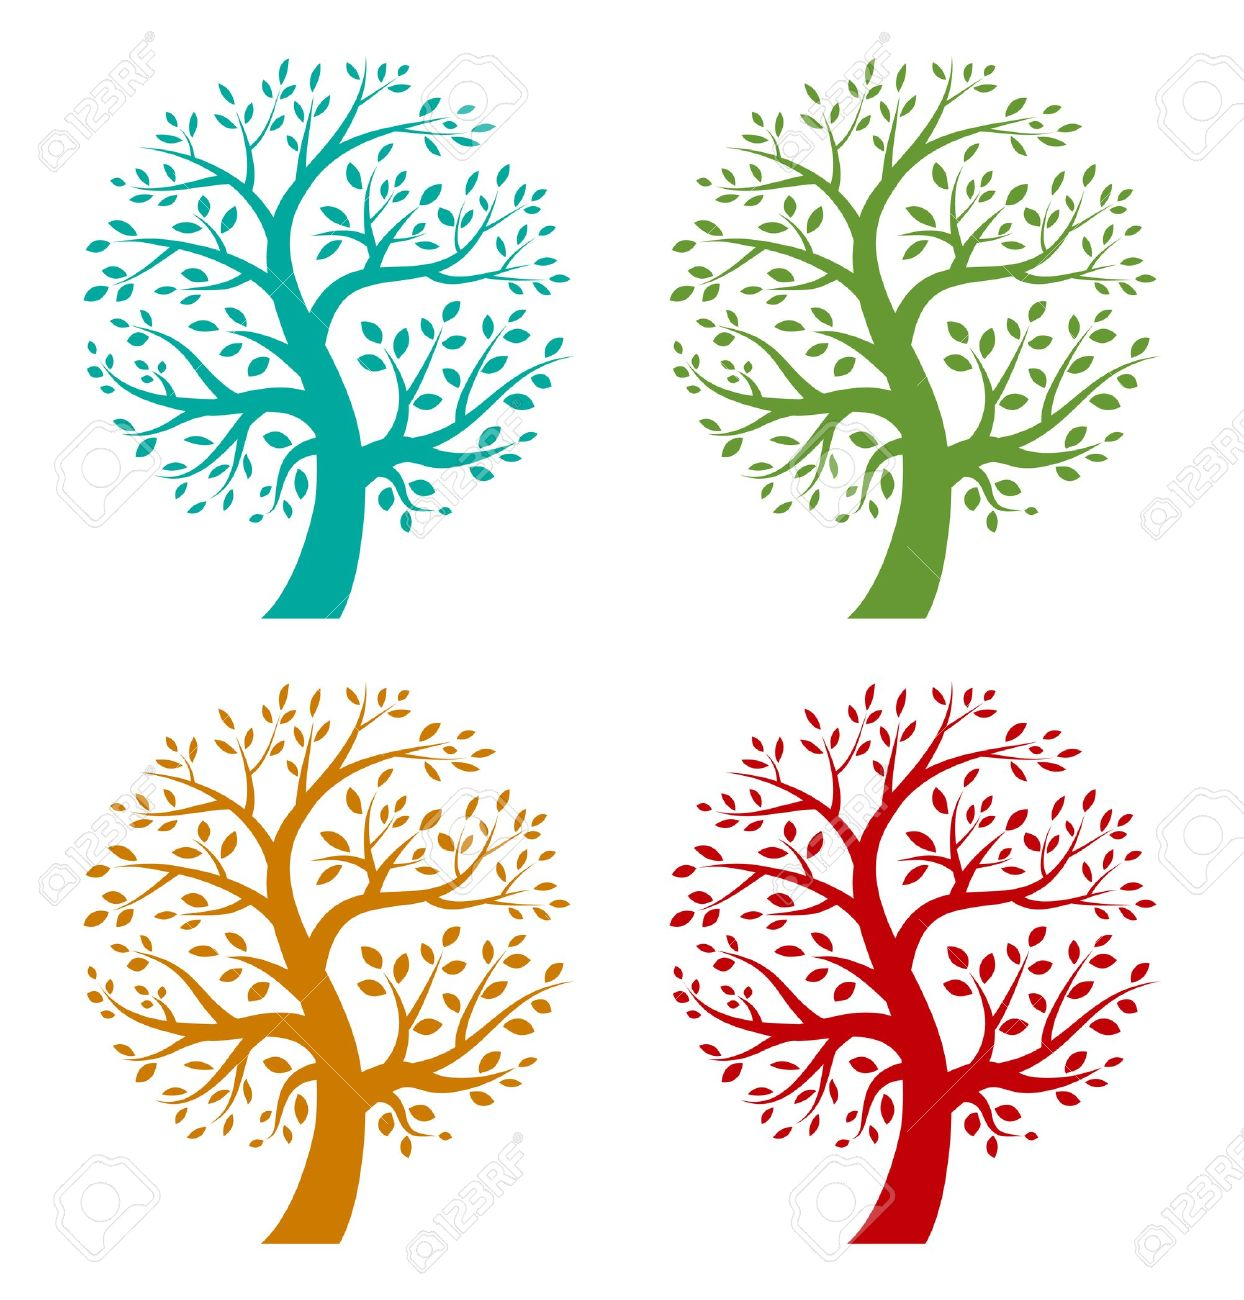 Set Of Colorful Season Tree Icons Royalty Free Cliparts, Vectors.